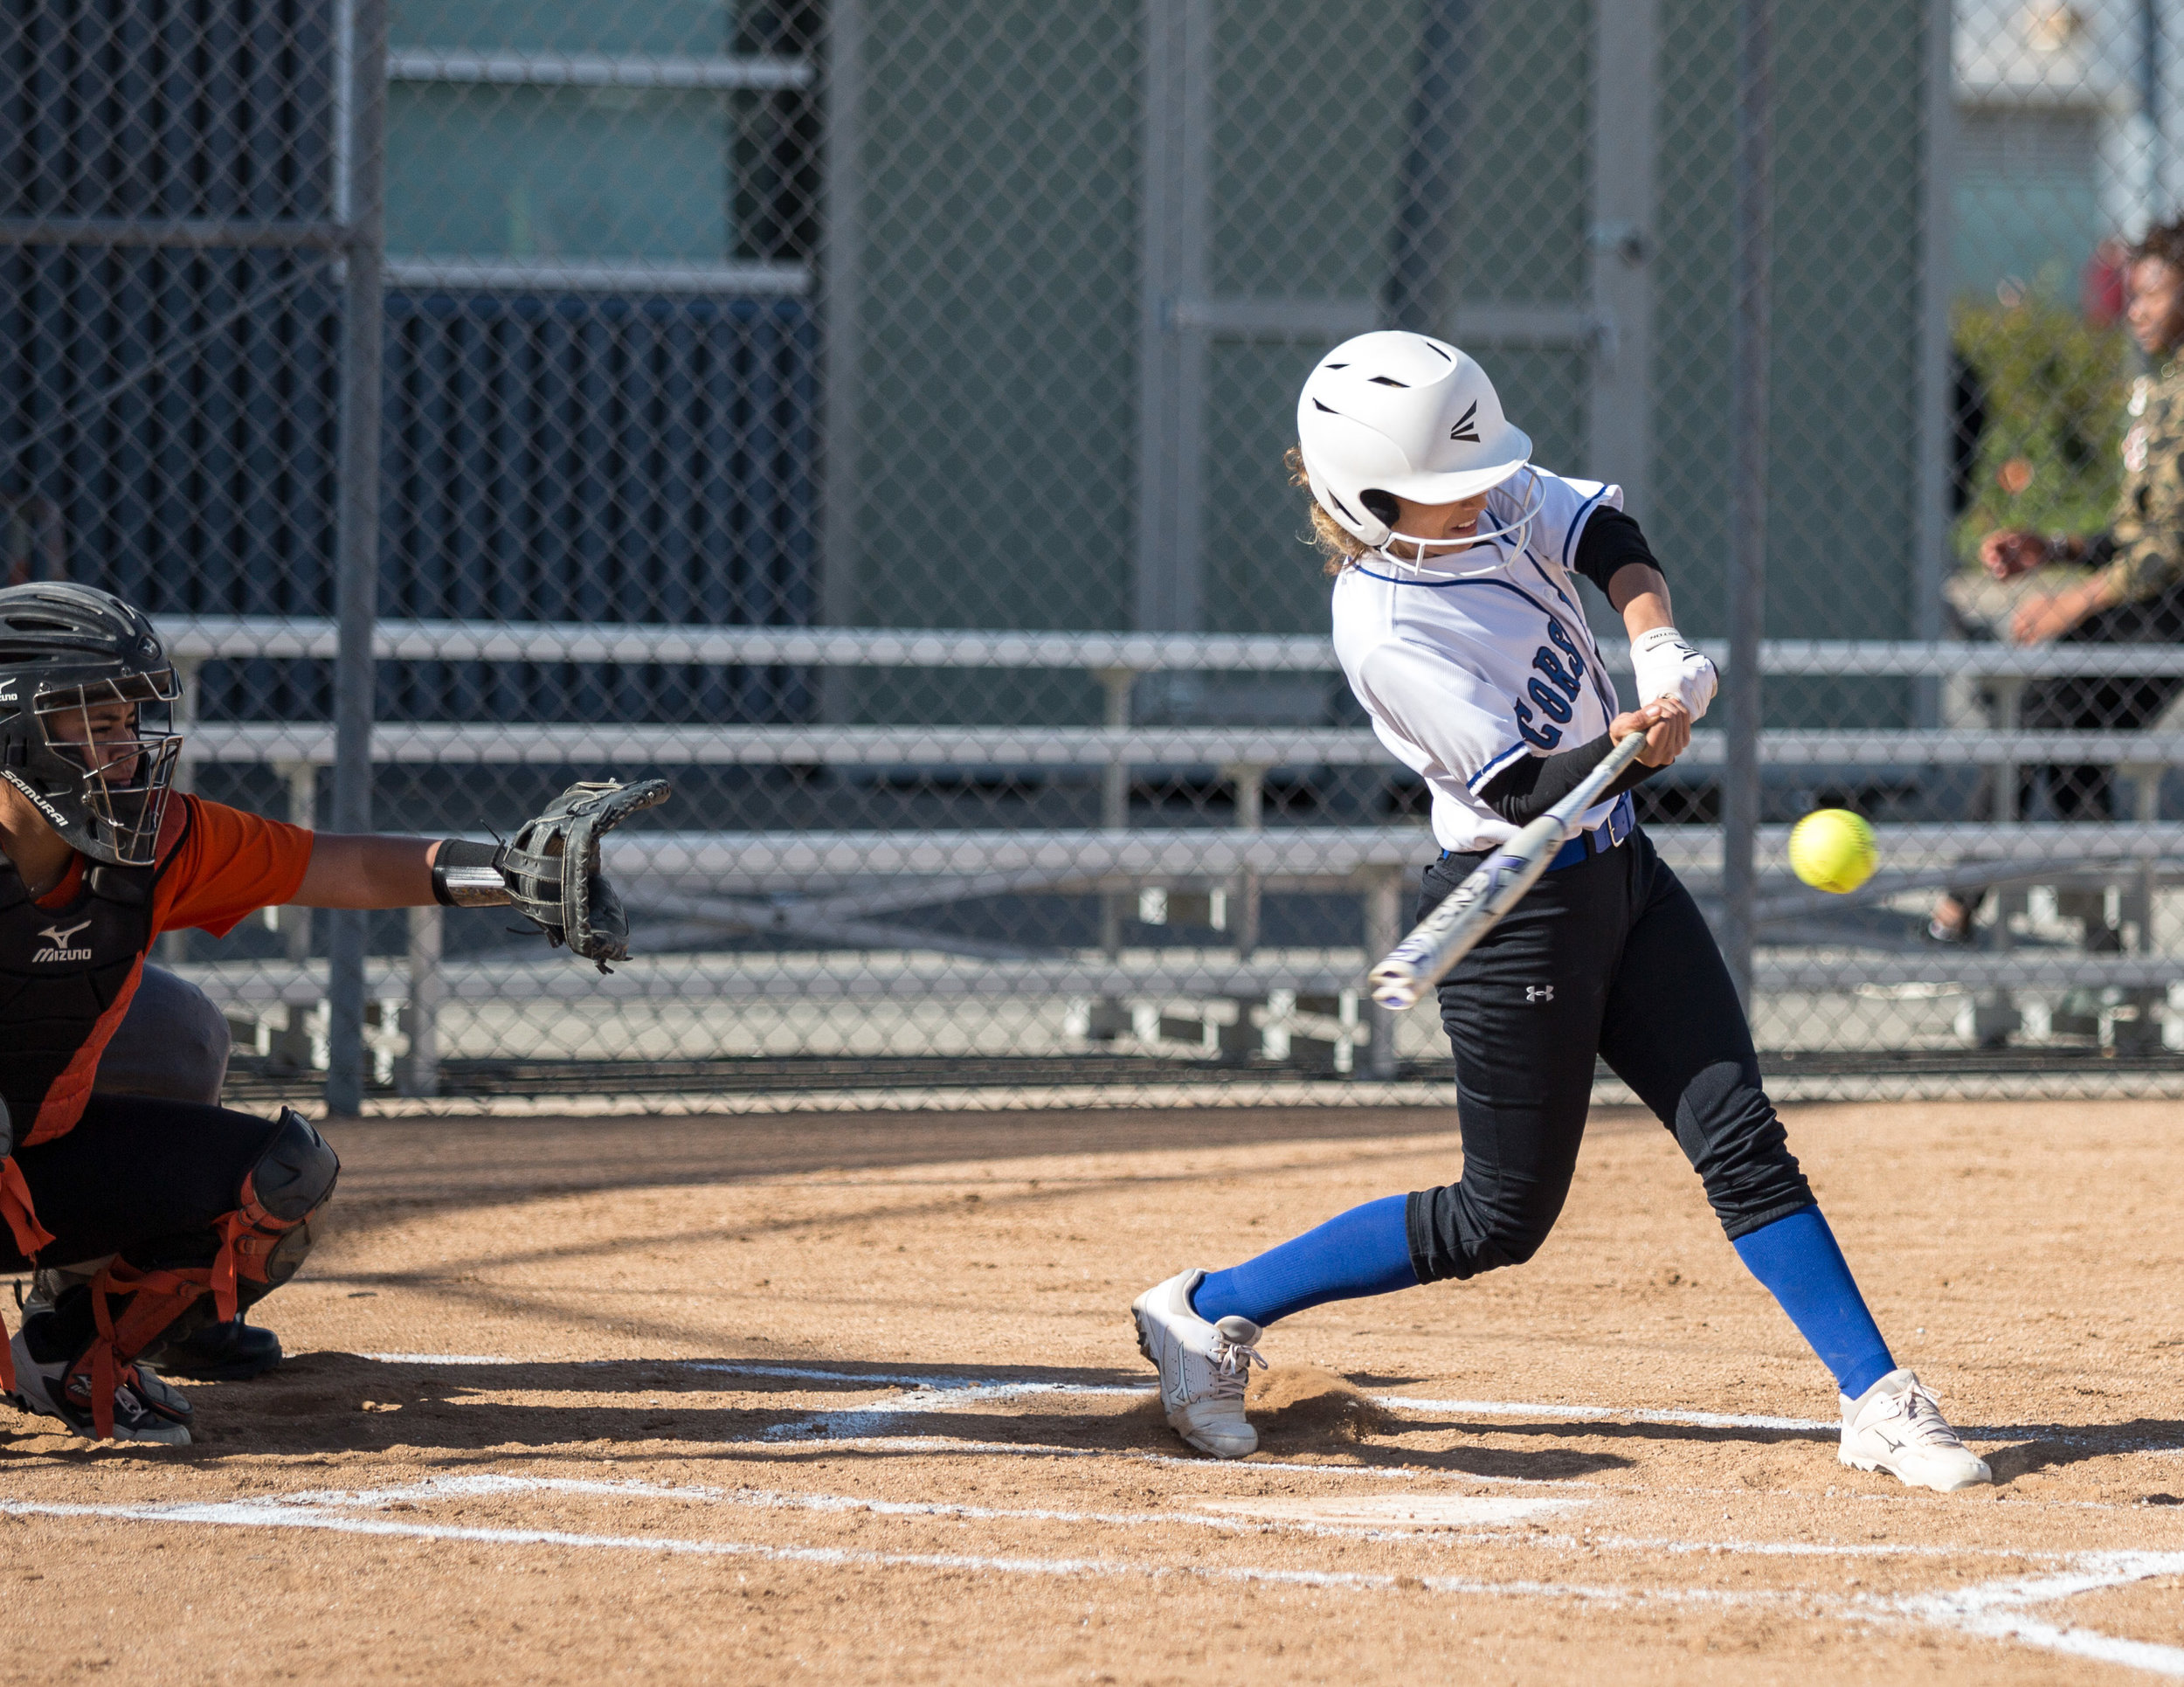 Santa Monica College Corsair freshman infielder Taylor Liebesman #23 (white, right) hits a double during the top of the 2rd at the Corsair Field in Santa Monica California, on Tuesday, February 27 2018. The Corsairs would go on to lose the game 0-14 against the Ventura College Pirates. (Corsair Photo: Matthew Martin)